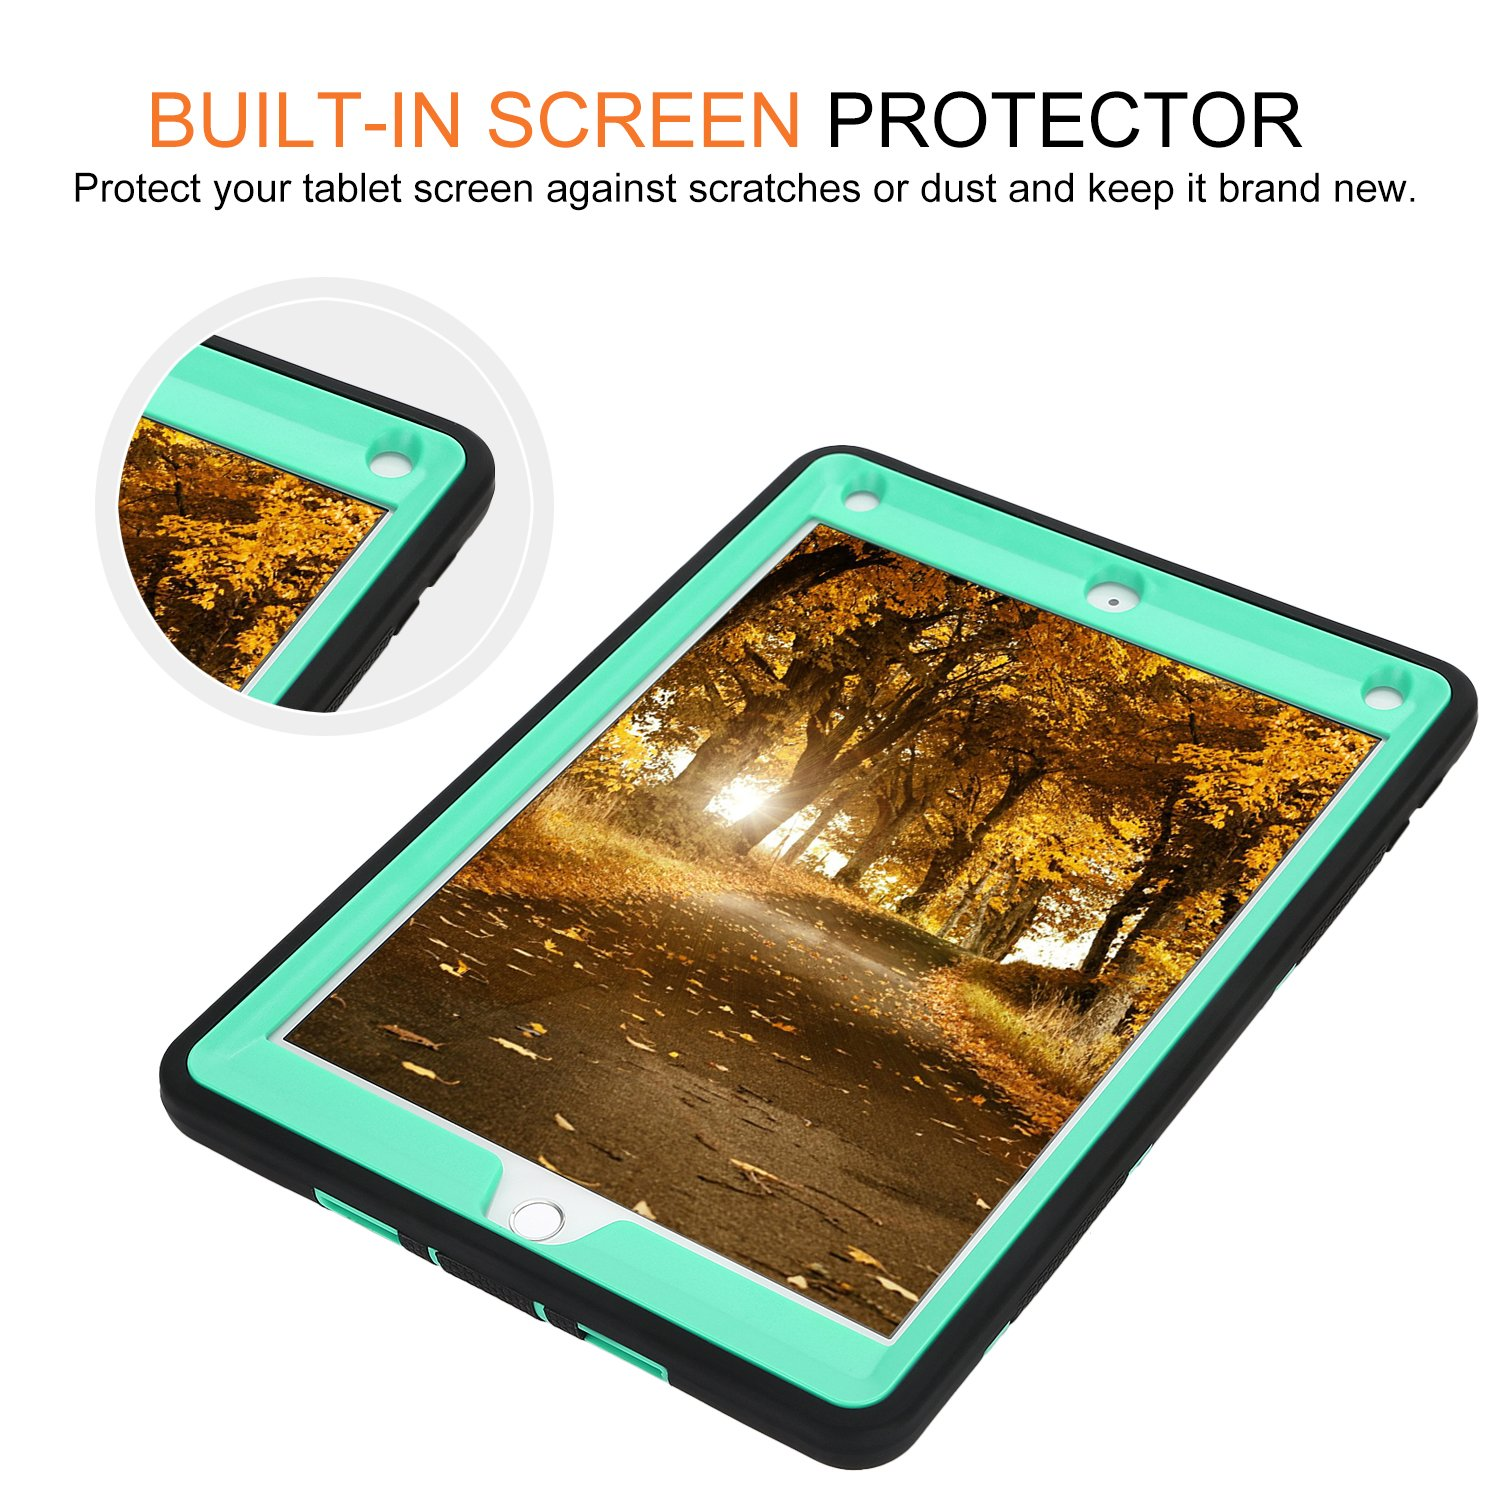 Rugged 3-Layer Heavy Duty Shock Proof iPad 234 Mini Pro Air Case Shell Cover 43